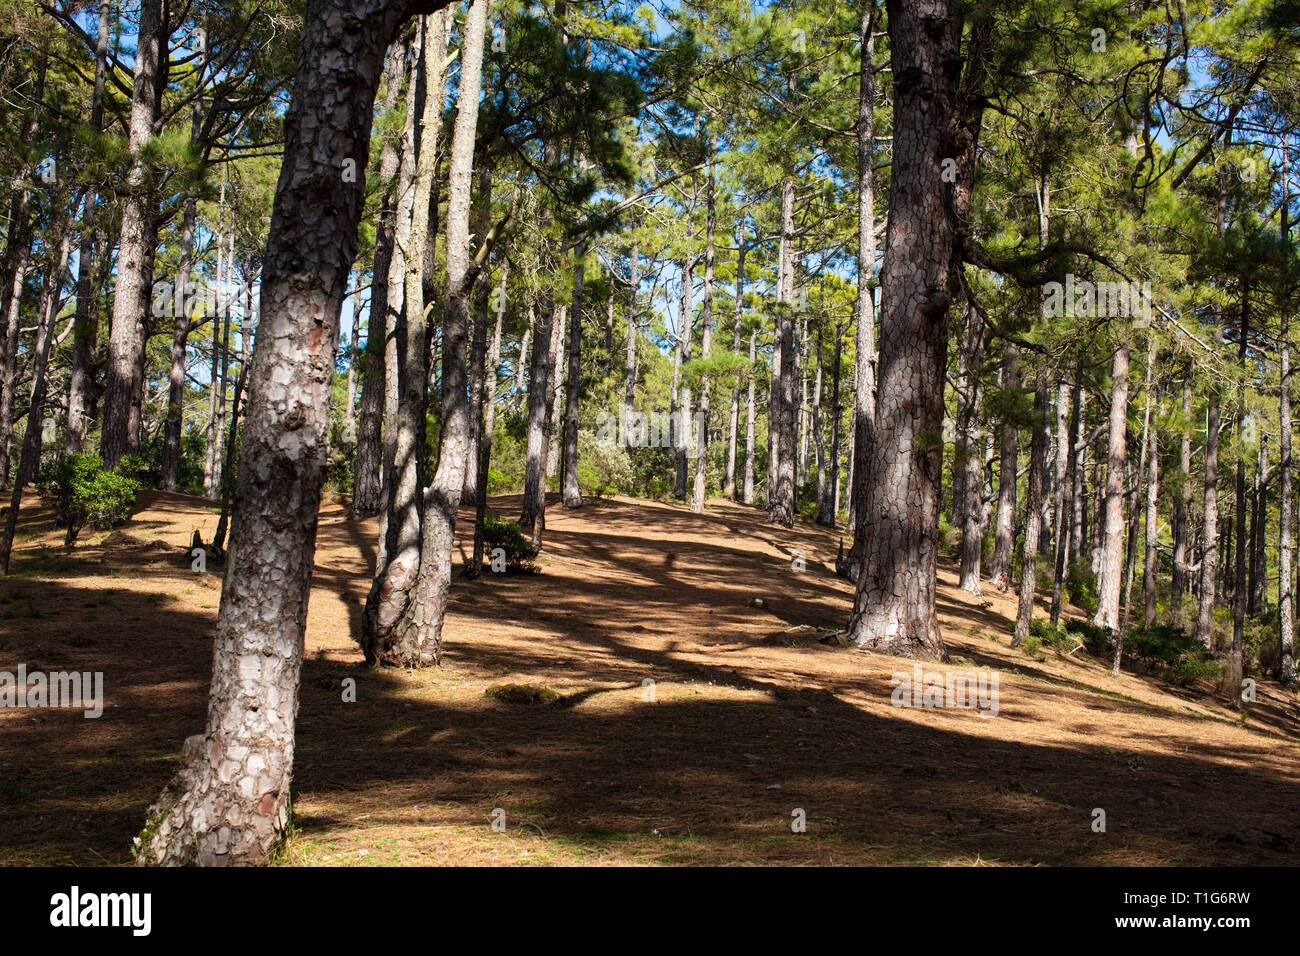 Pine forest Teneriffa - Stock Image